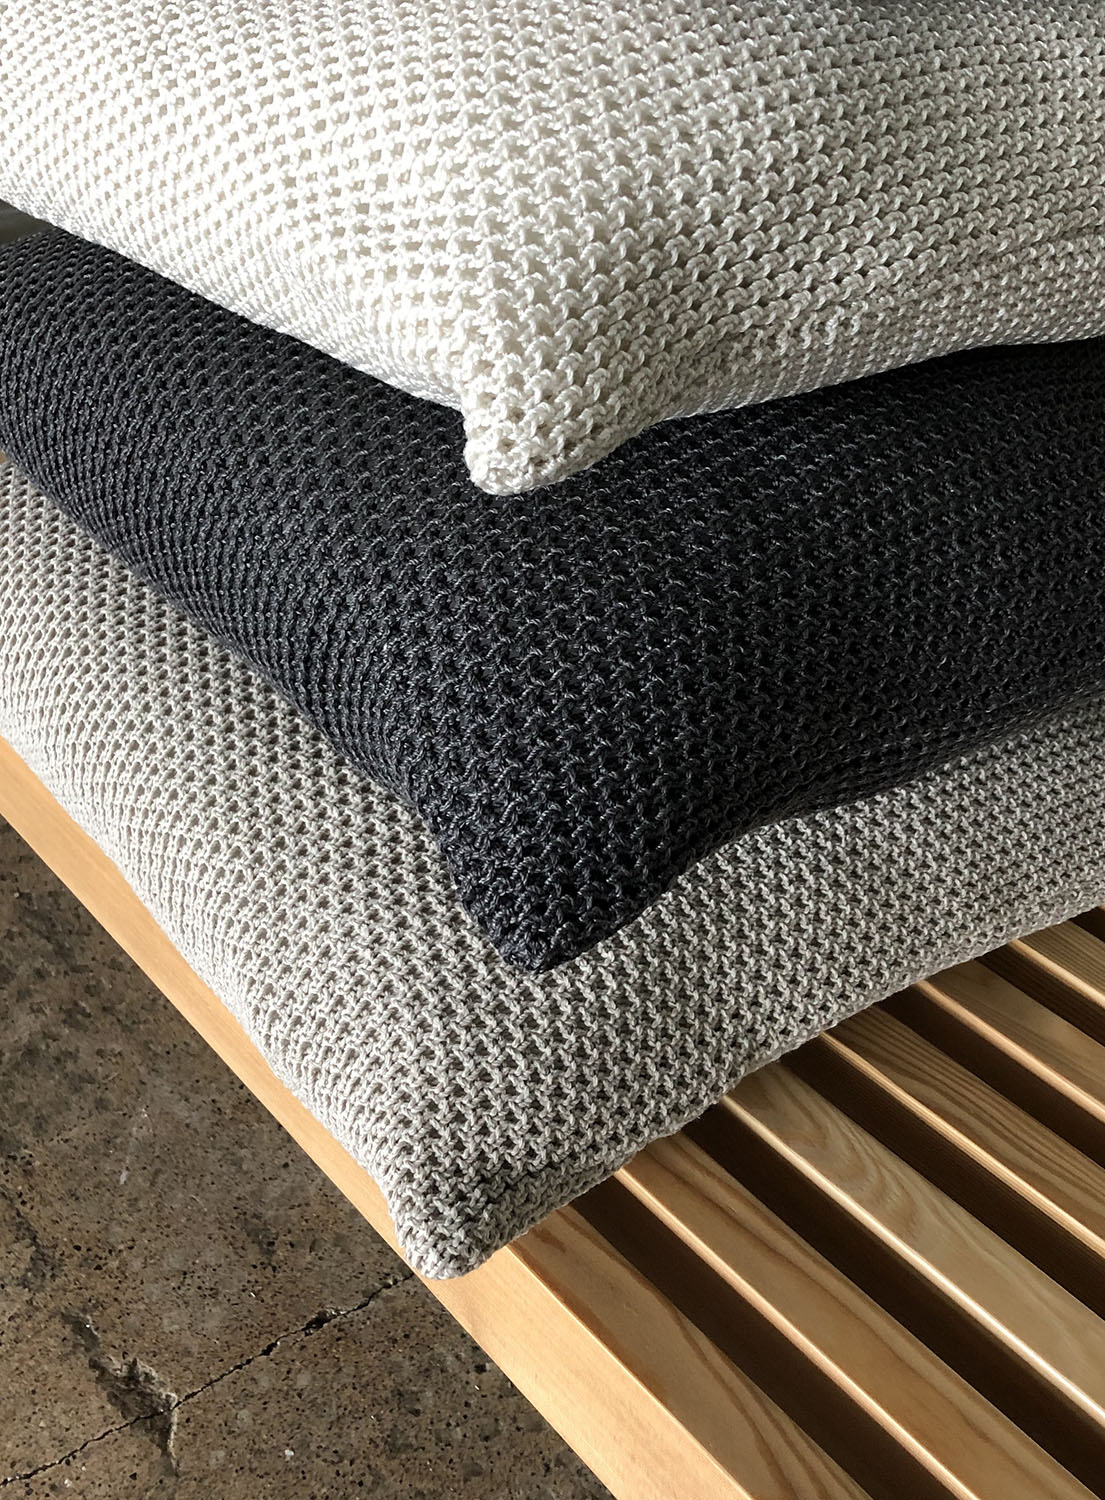 Garden cushions col. natural white, graphite, light sand (from top to bottom)